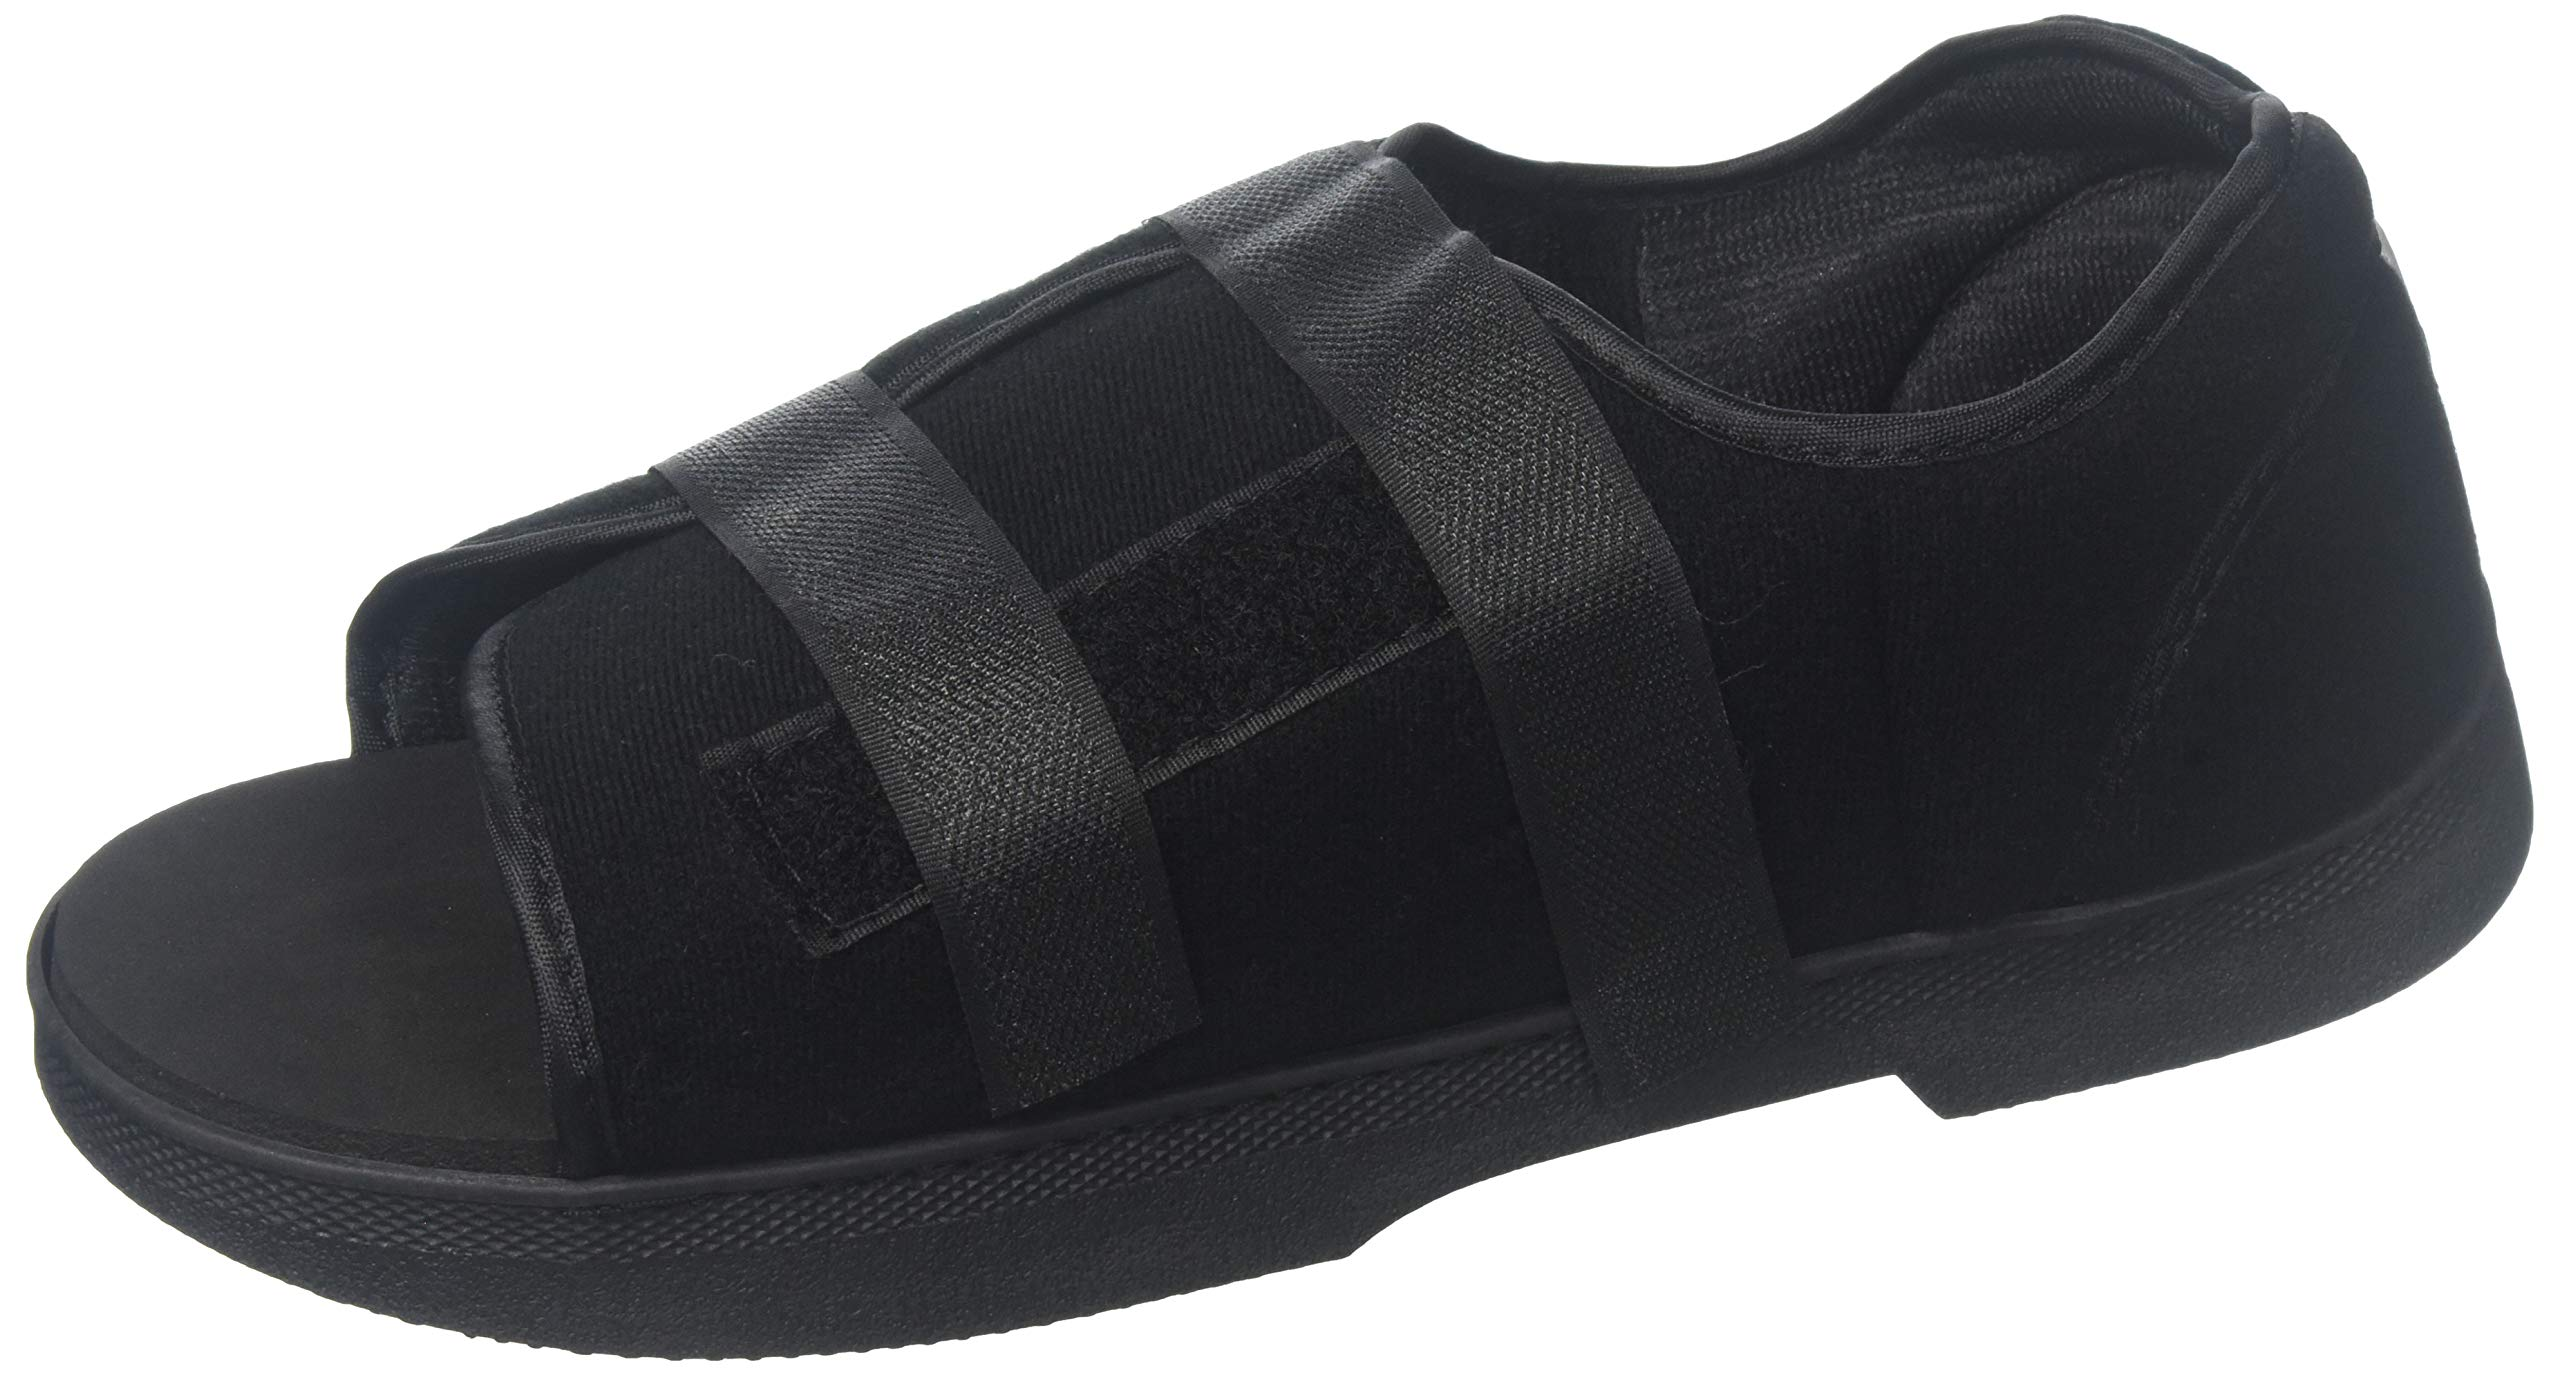 Darco International Softie Surgical Shoe Mens, Large, 0.7 Pound by Darco International